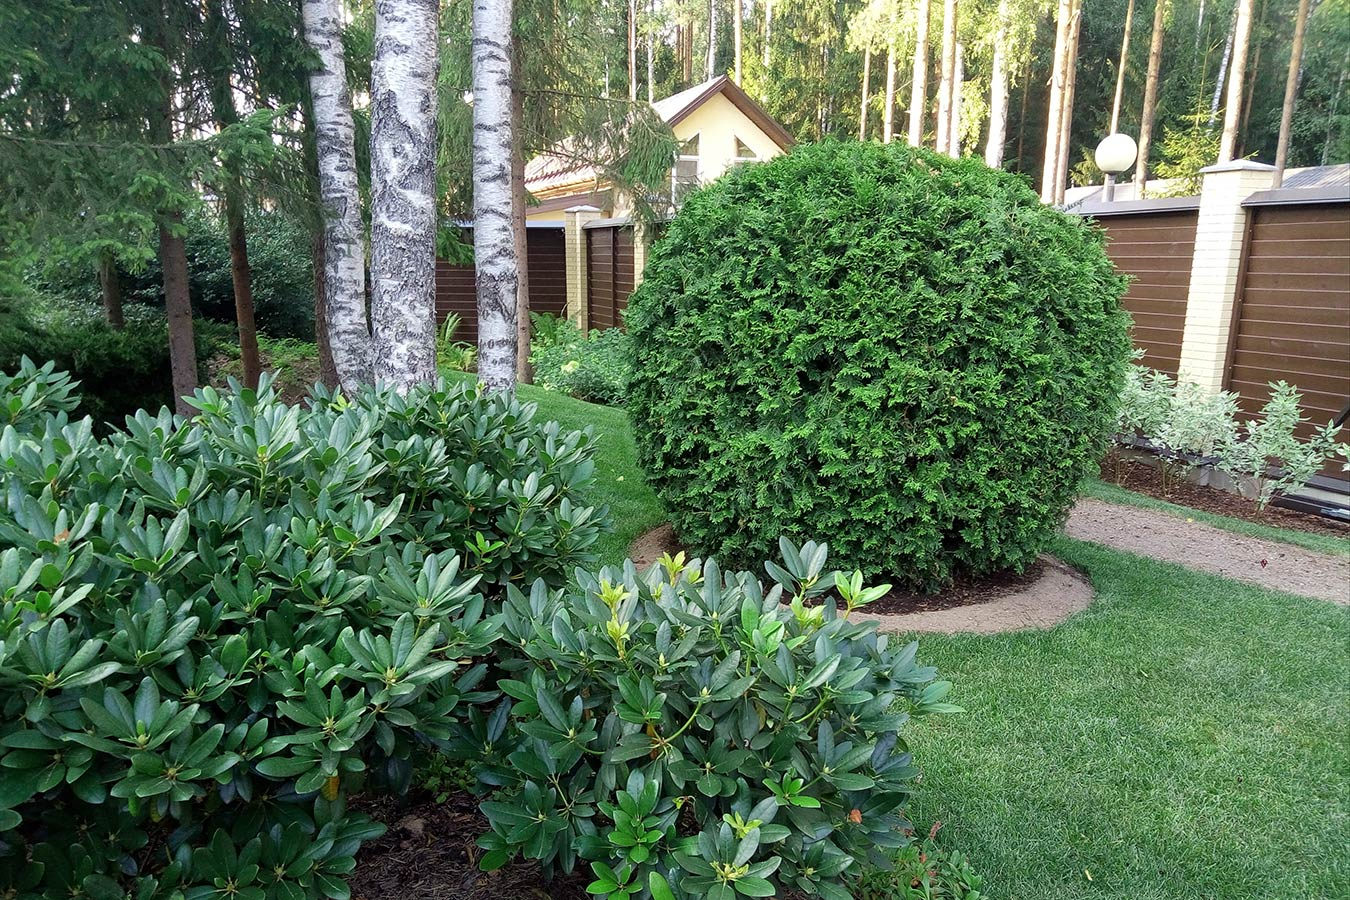 beautiful landscaping in a yard